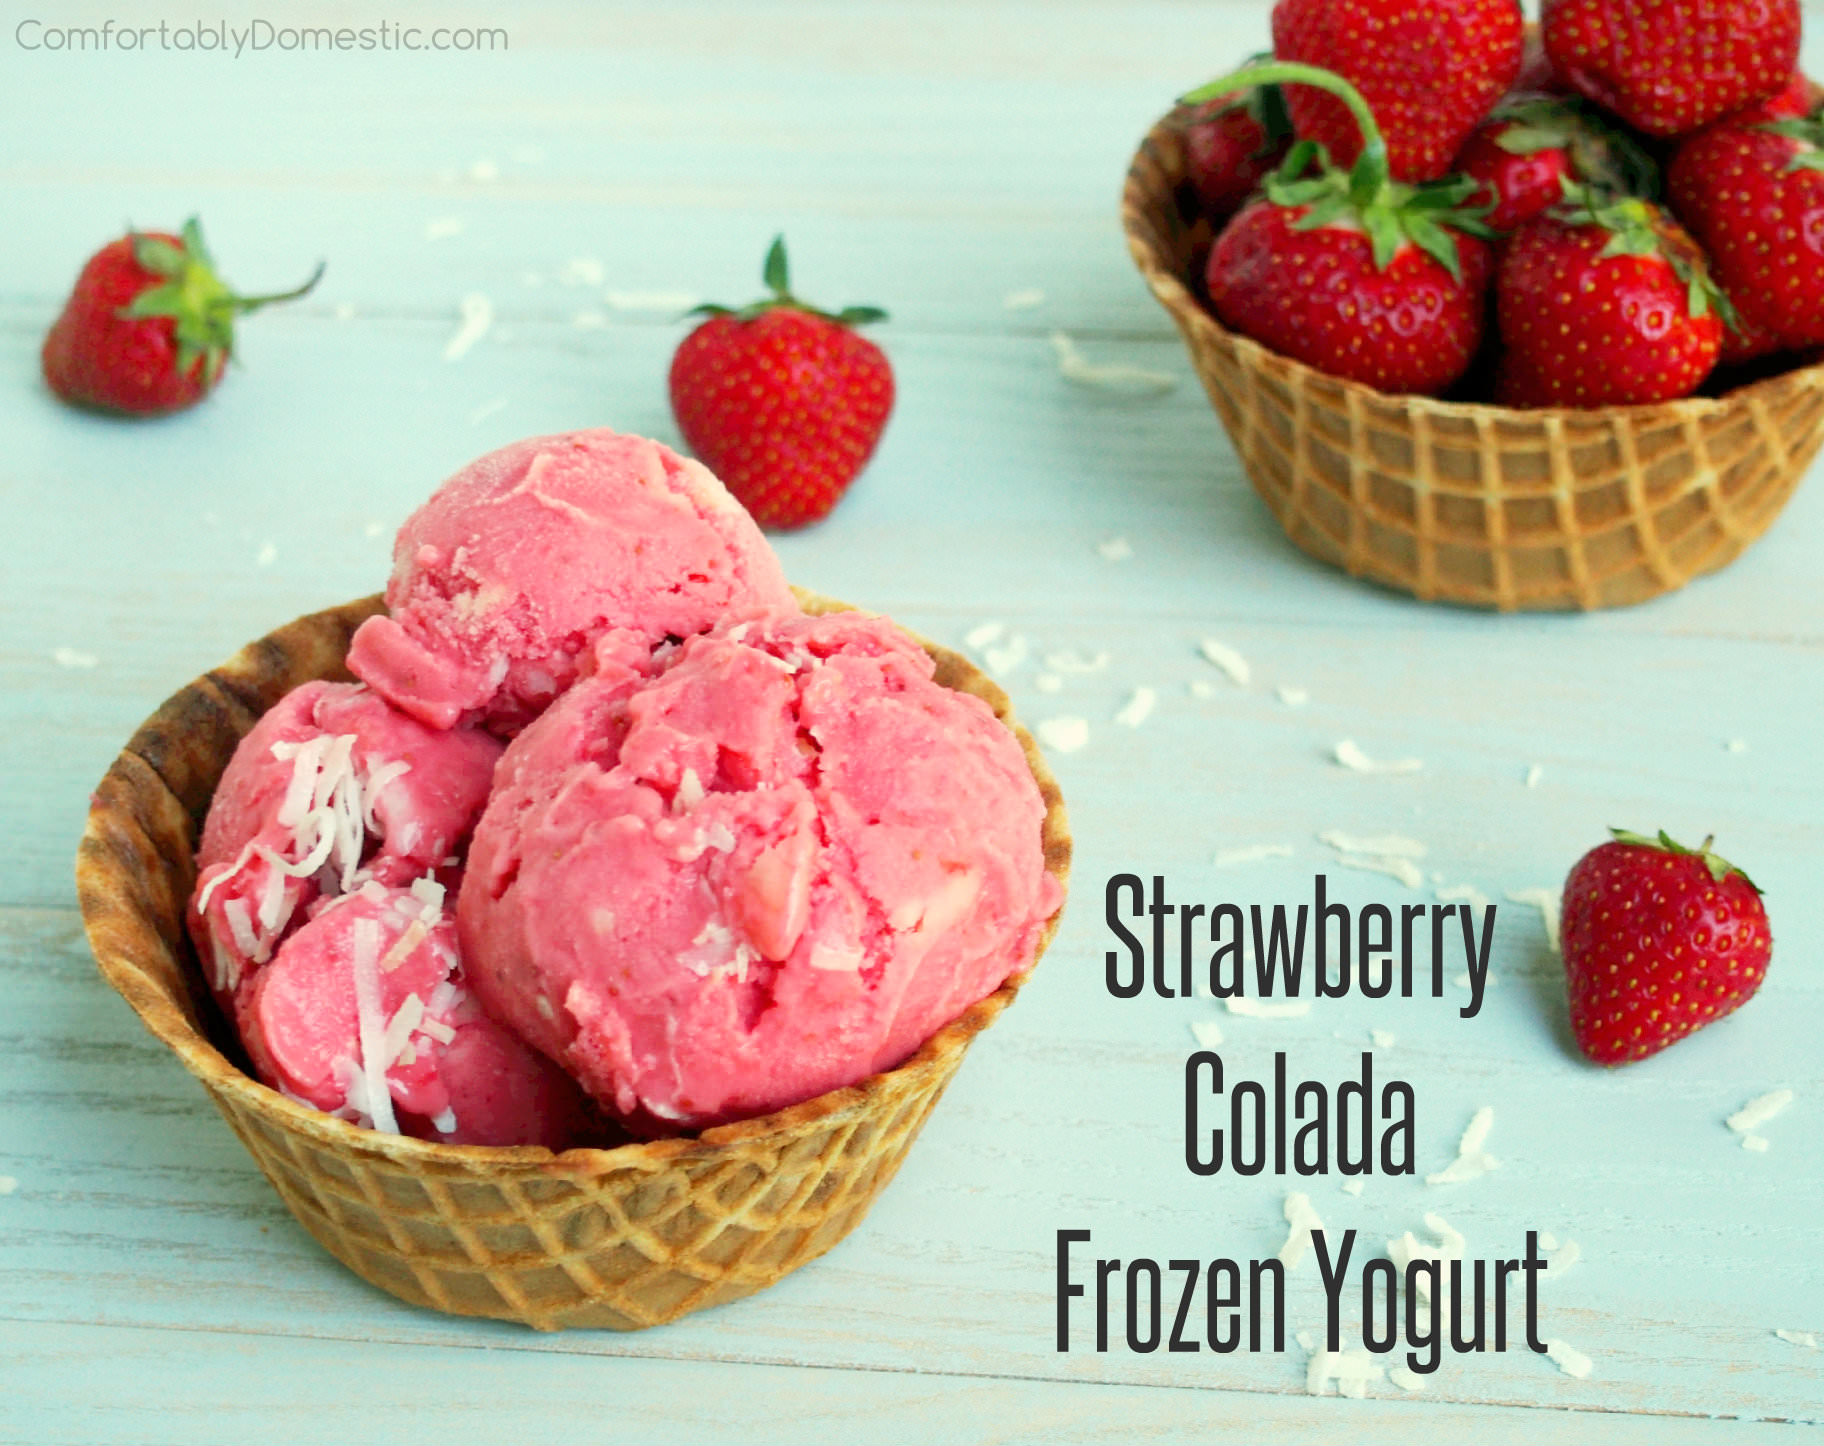 Strawberry Colada Frozen Yogurt | ComfortablyDomestic.com